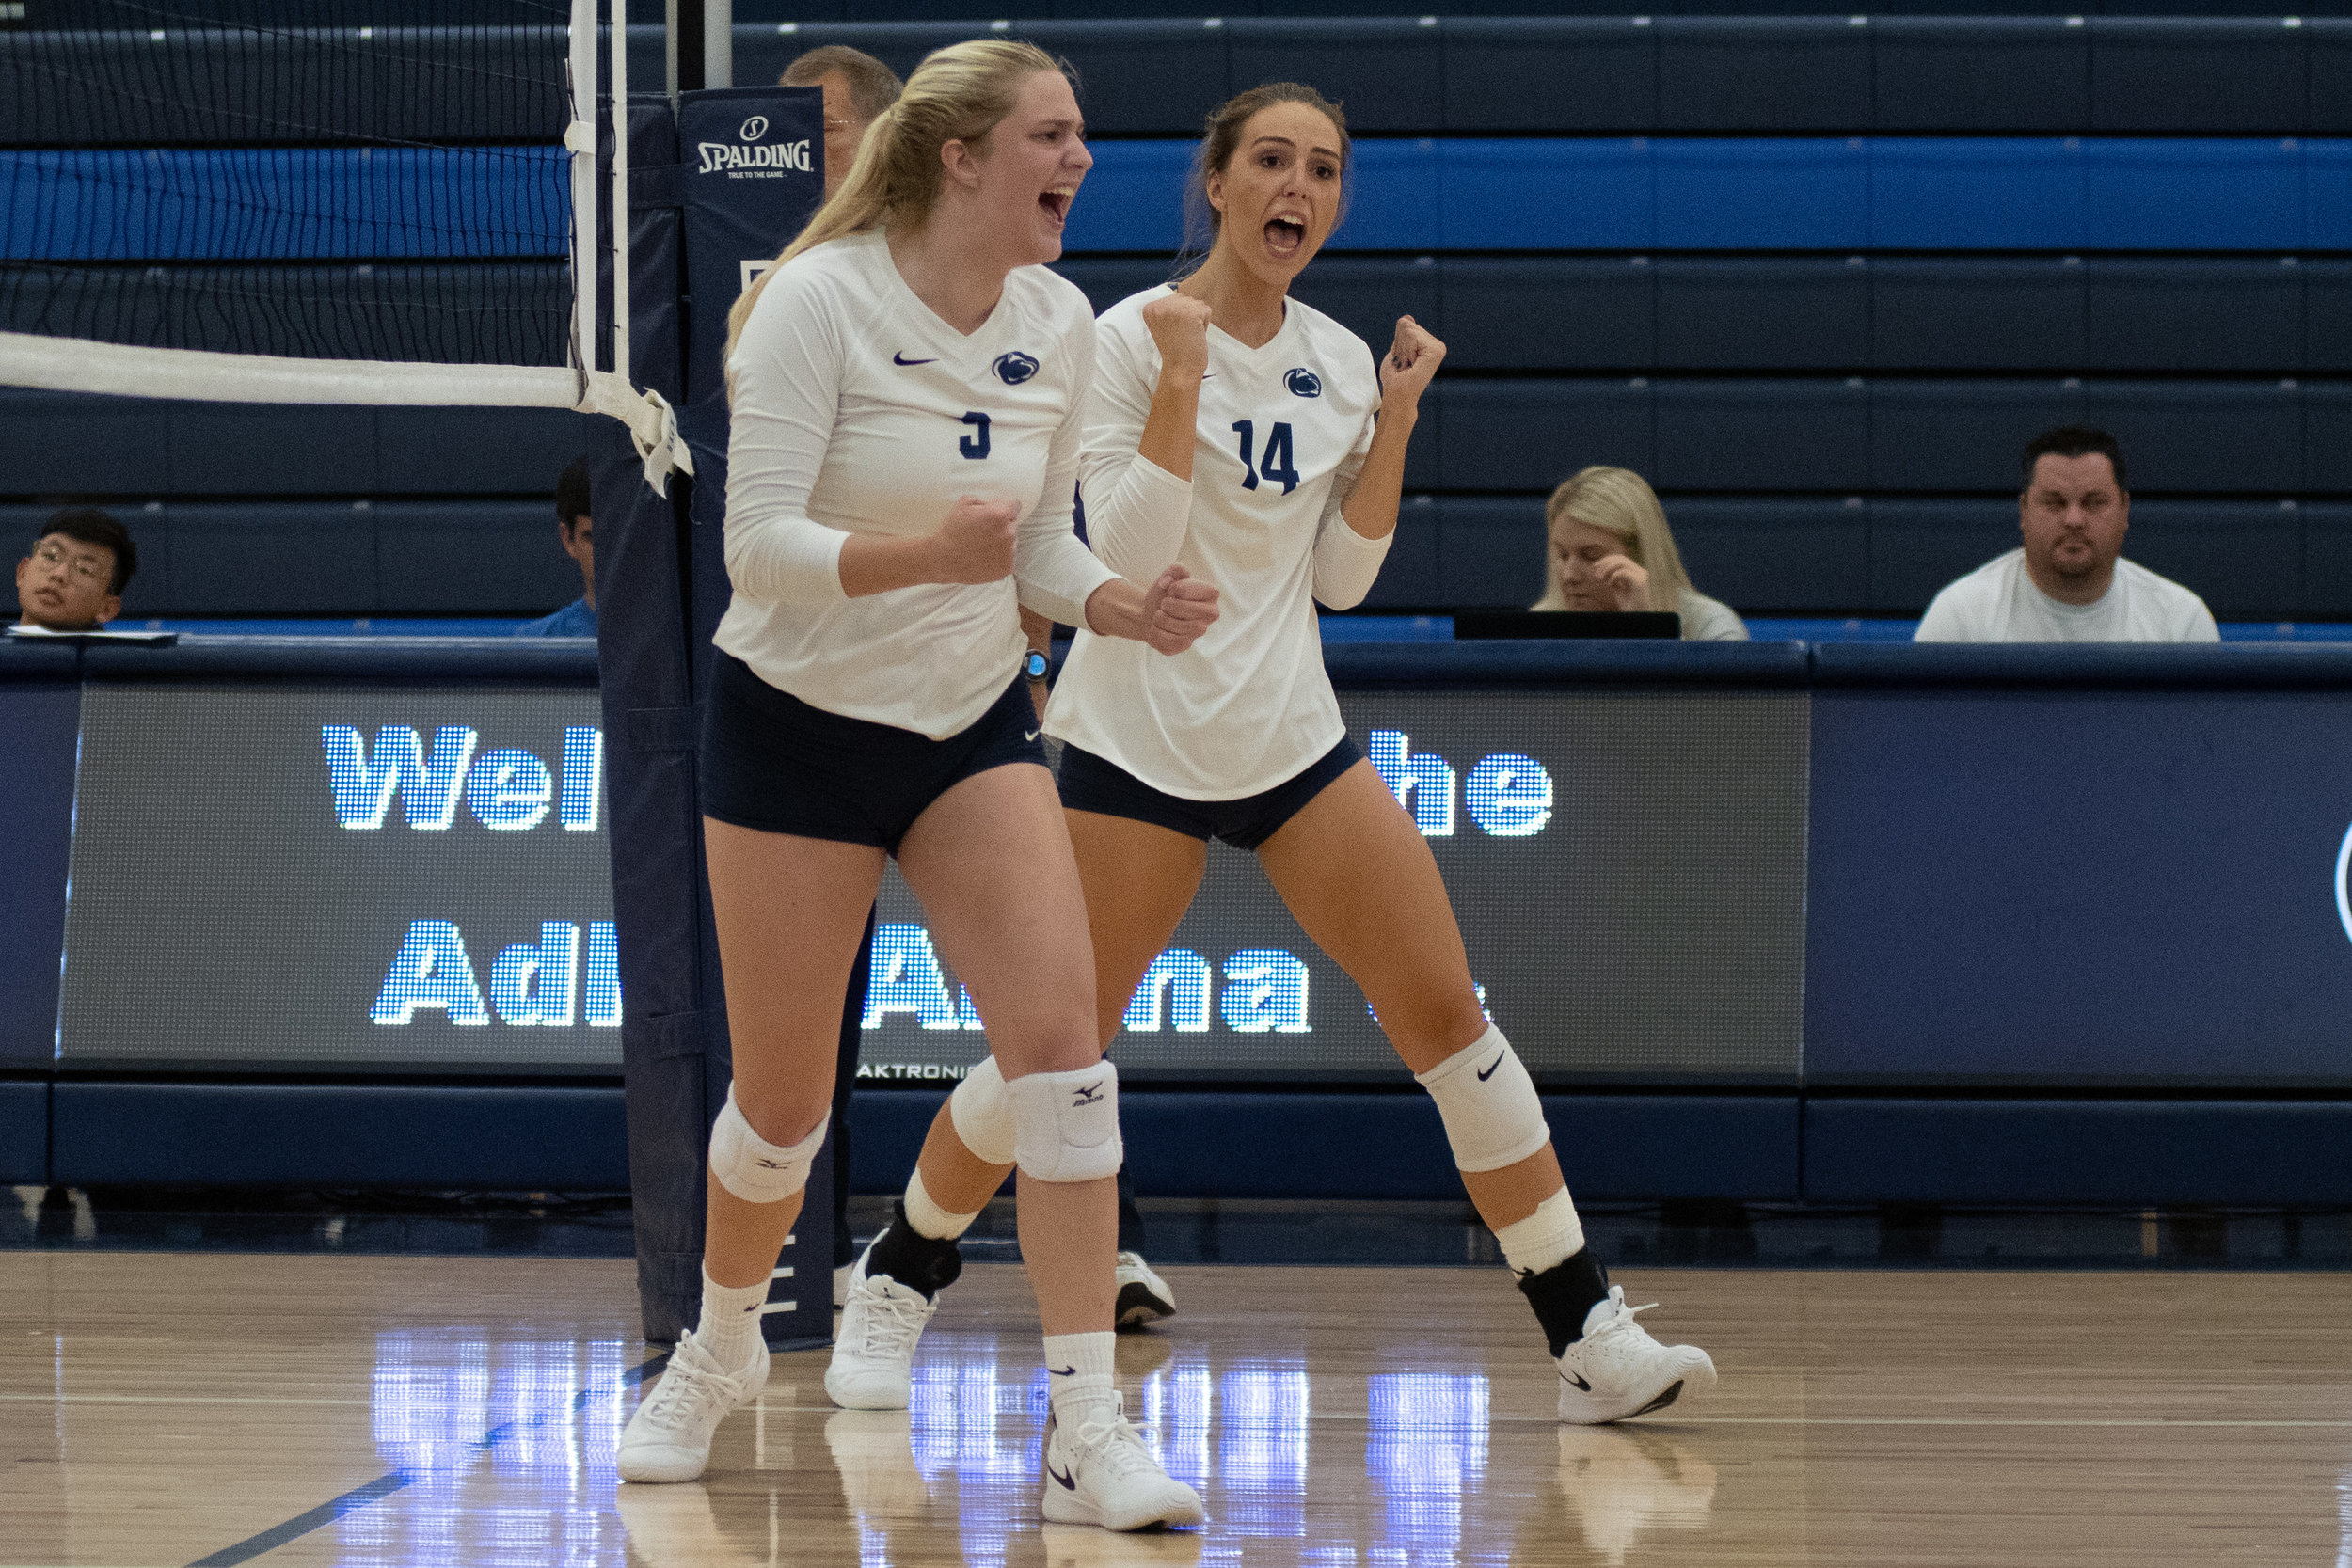 Penn State Altoona Women's Volleyball players Alexis Cannistraci (#9) and Eden Taddei (#14) celebrate scoring in their 3-0 loss to Penn State Harrisburg.